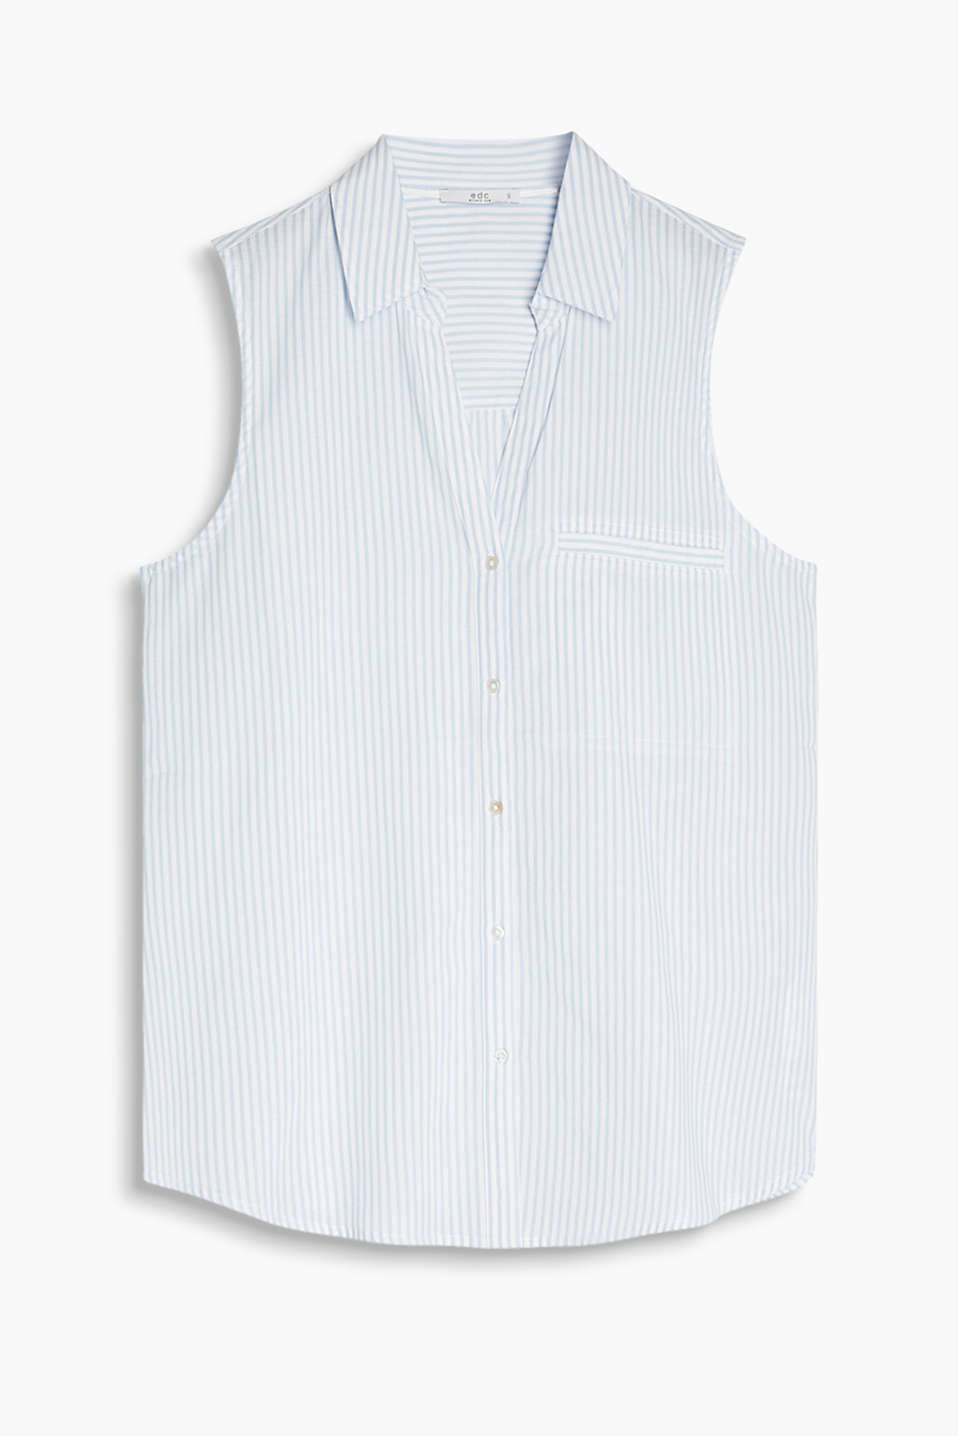 Sleeveless cotton blouse with a fresh, gingham check pattern